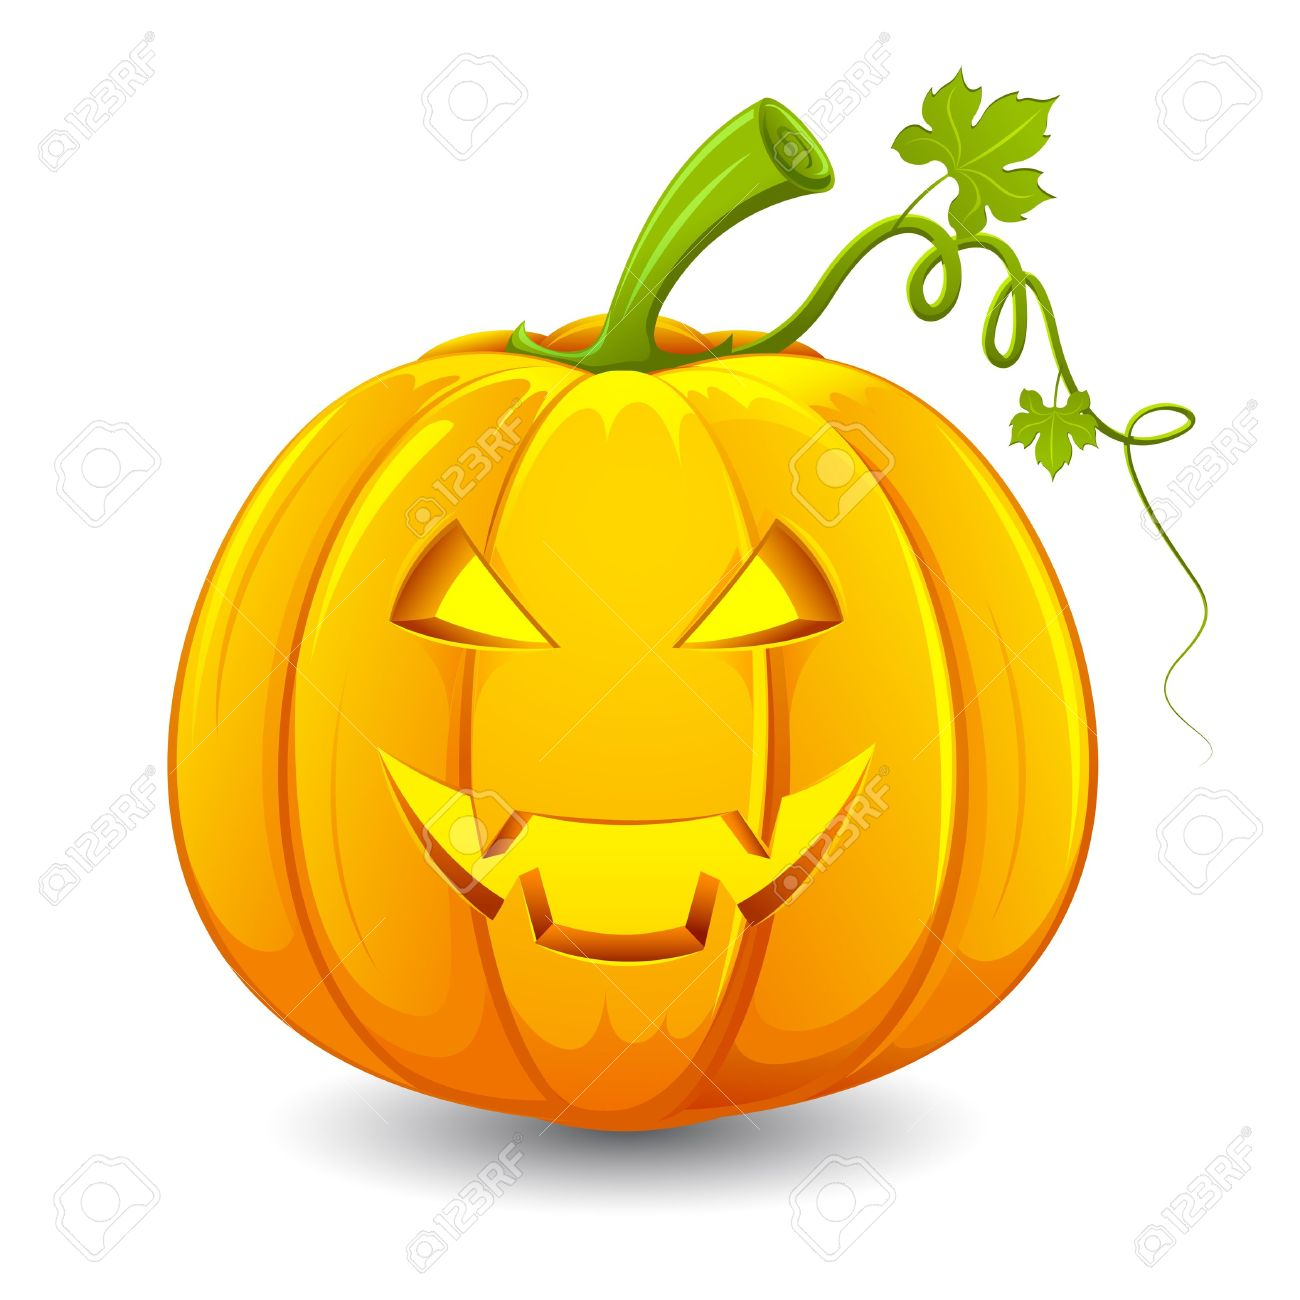 1,566 Happy Pumpkin Carving Stock Illustrations, Cliparts And.